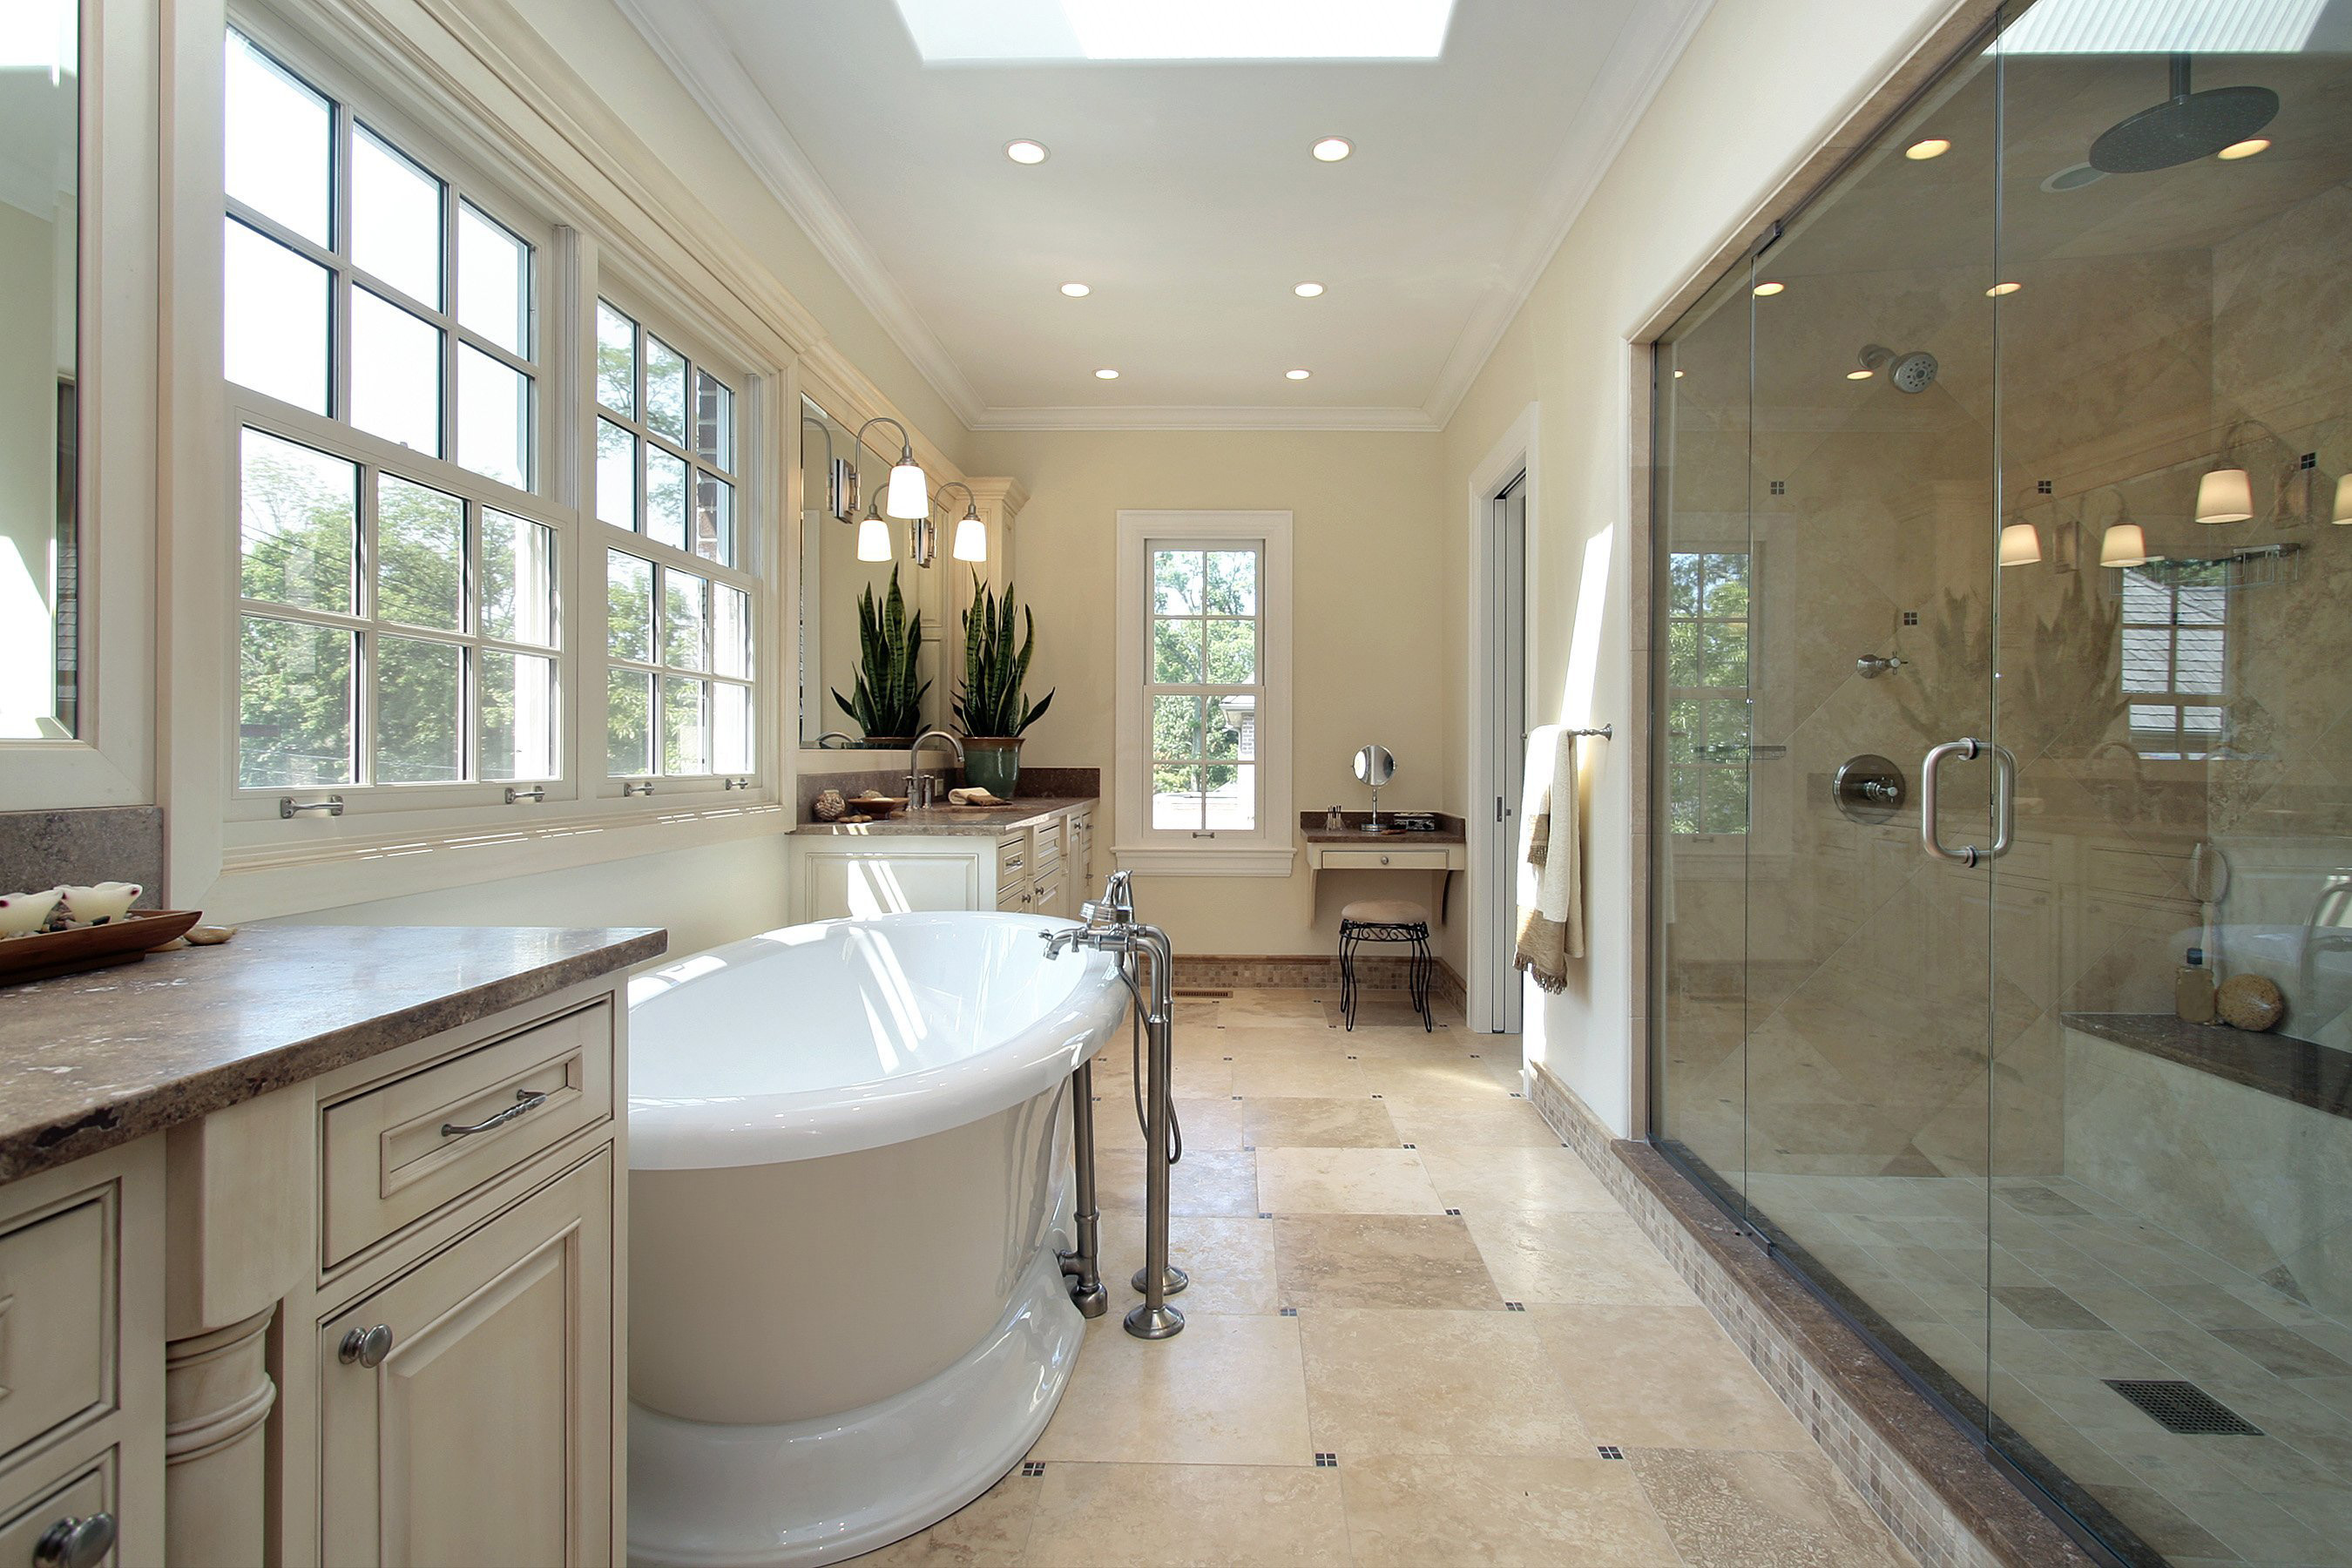 current furniture trends. Current Bathroom Remodeling Trends. Furniture Trends